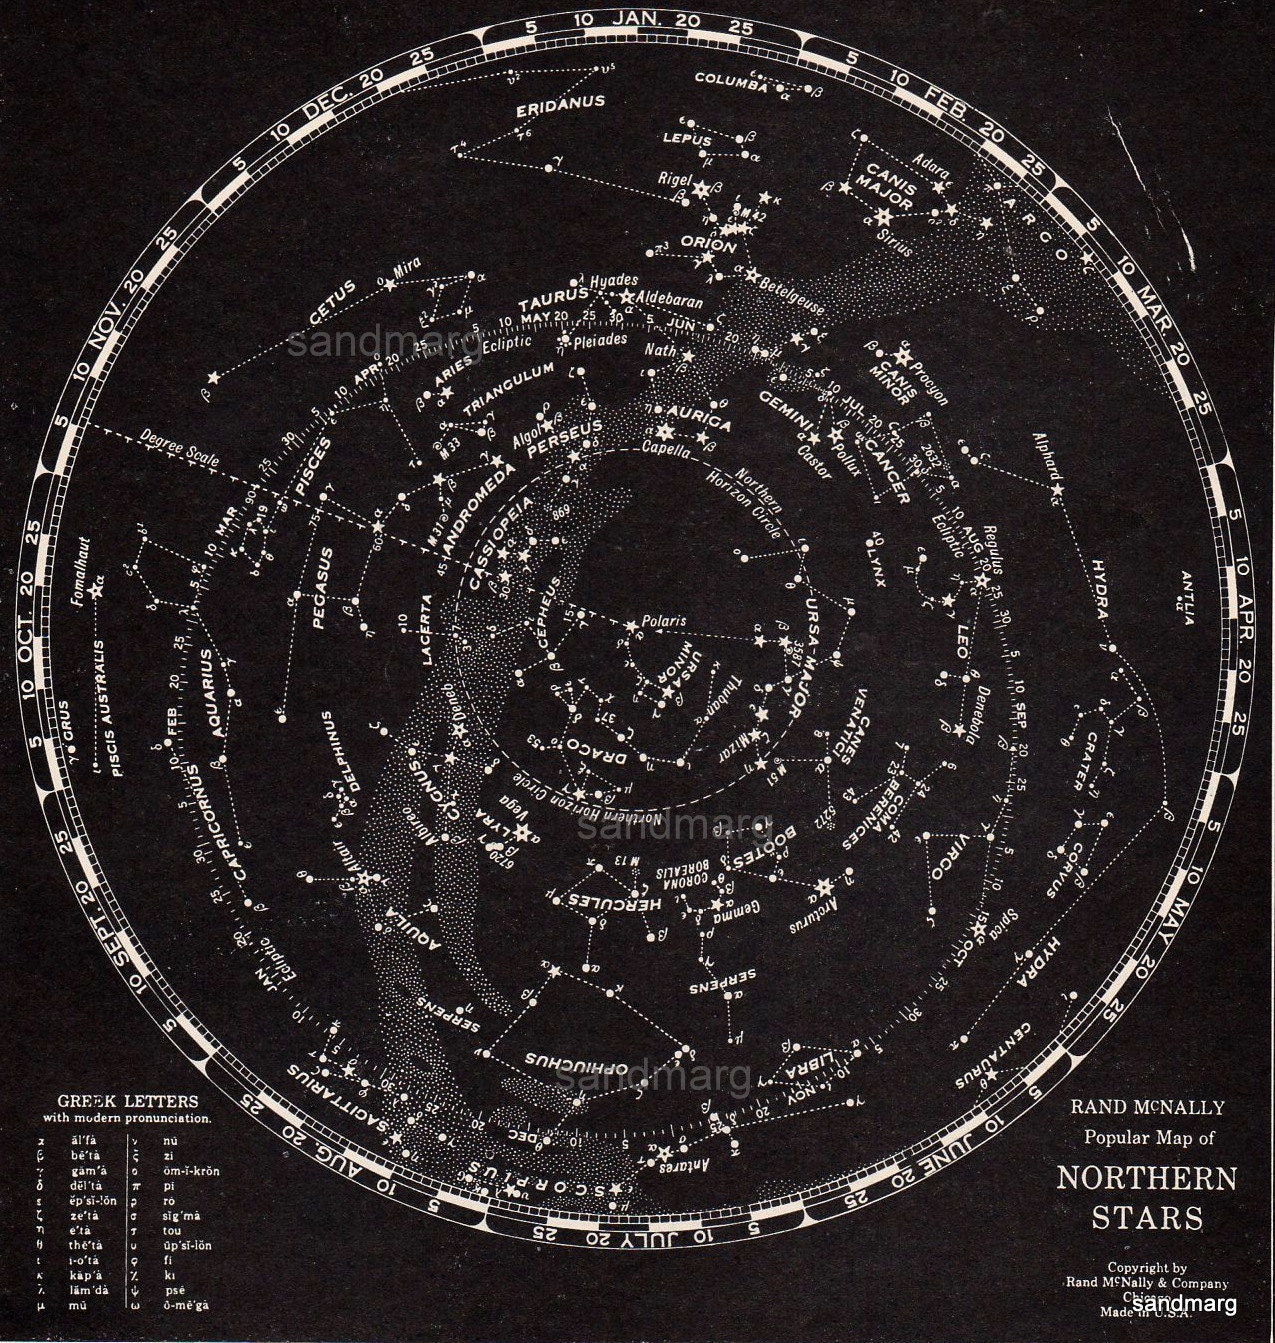 1932 rand mcnally star chart of the northern stars